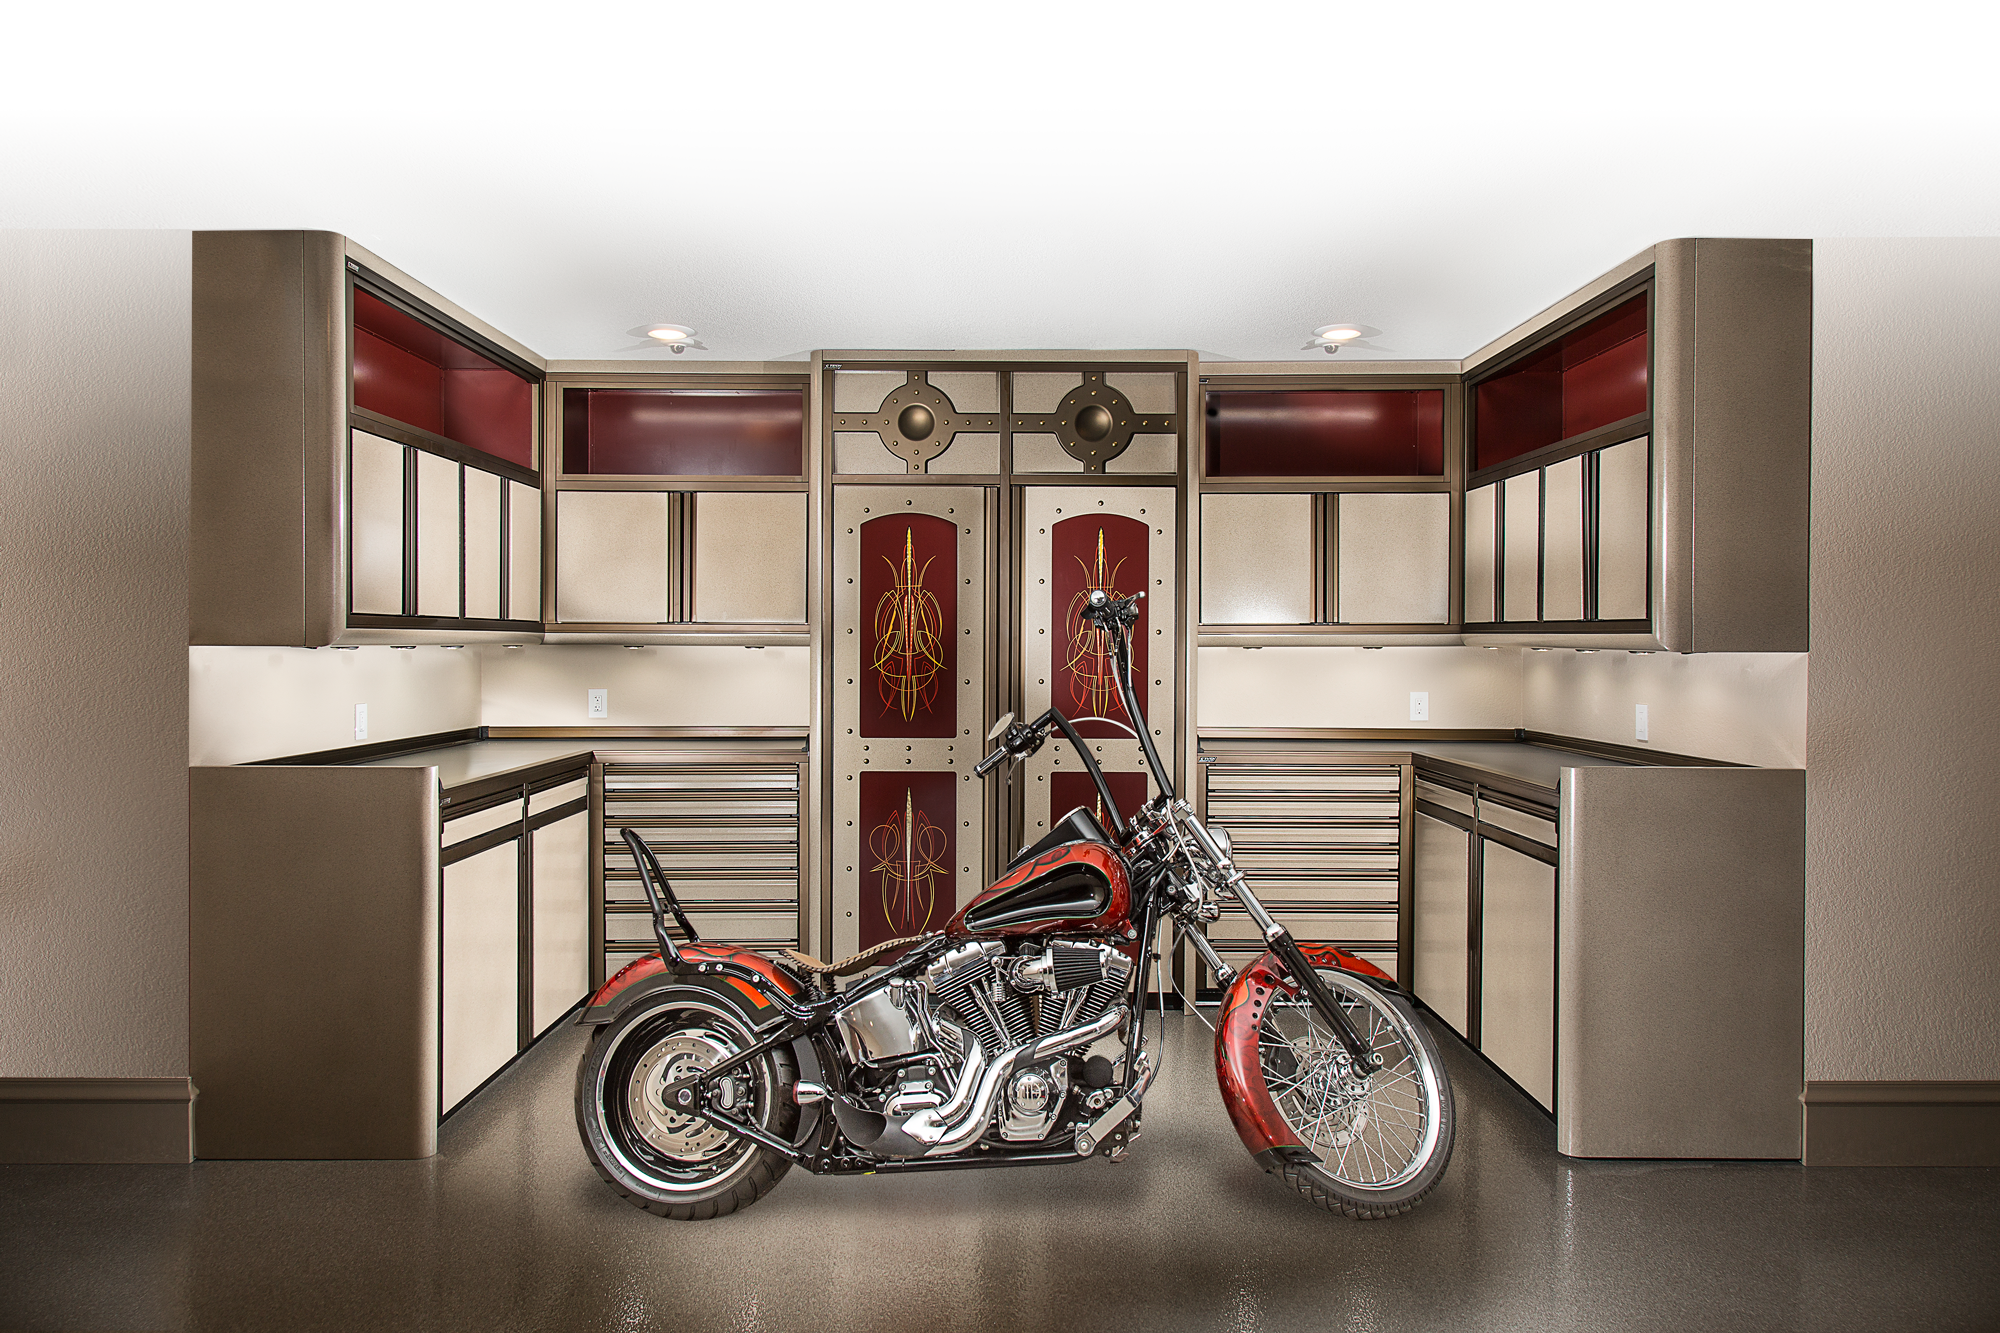 PREMIER Cabinets - Custom cabinets outfitted with radius panels, LED lighting, custom anodized framework and handles - Paul Greenheck, Show Garage